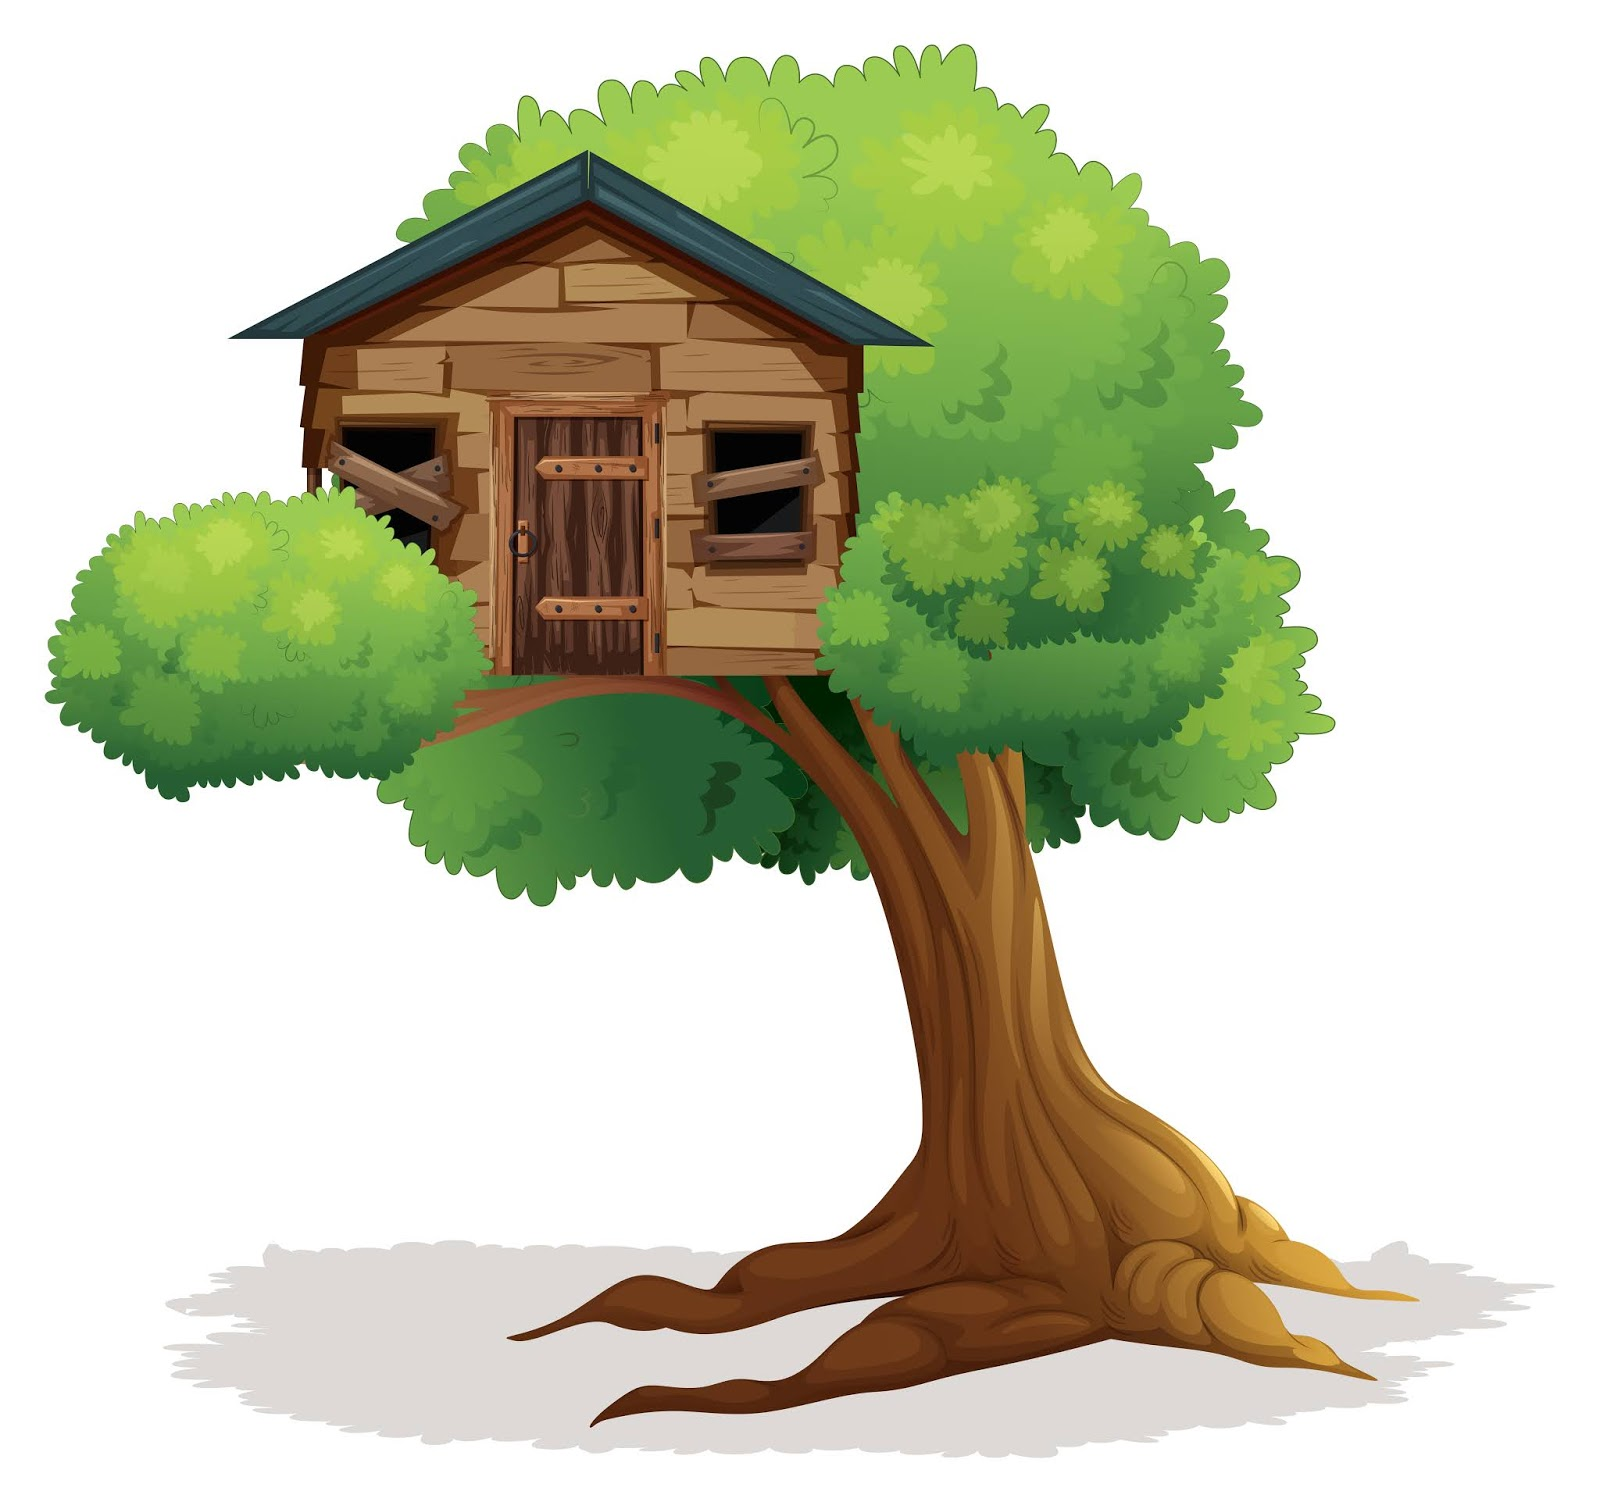 Wooden Treehouse Tree Free Download Vector CDR, AI, EPS and PNG Formats